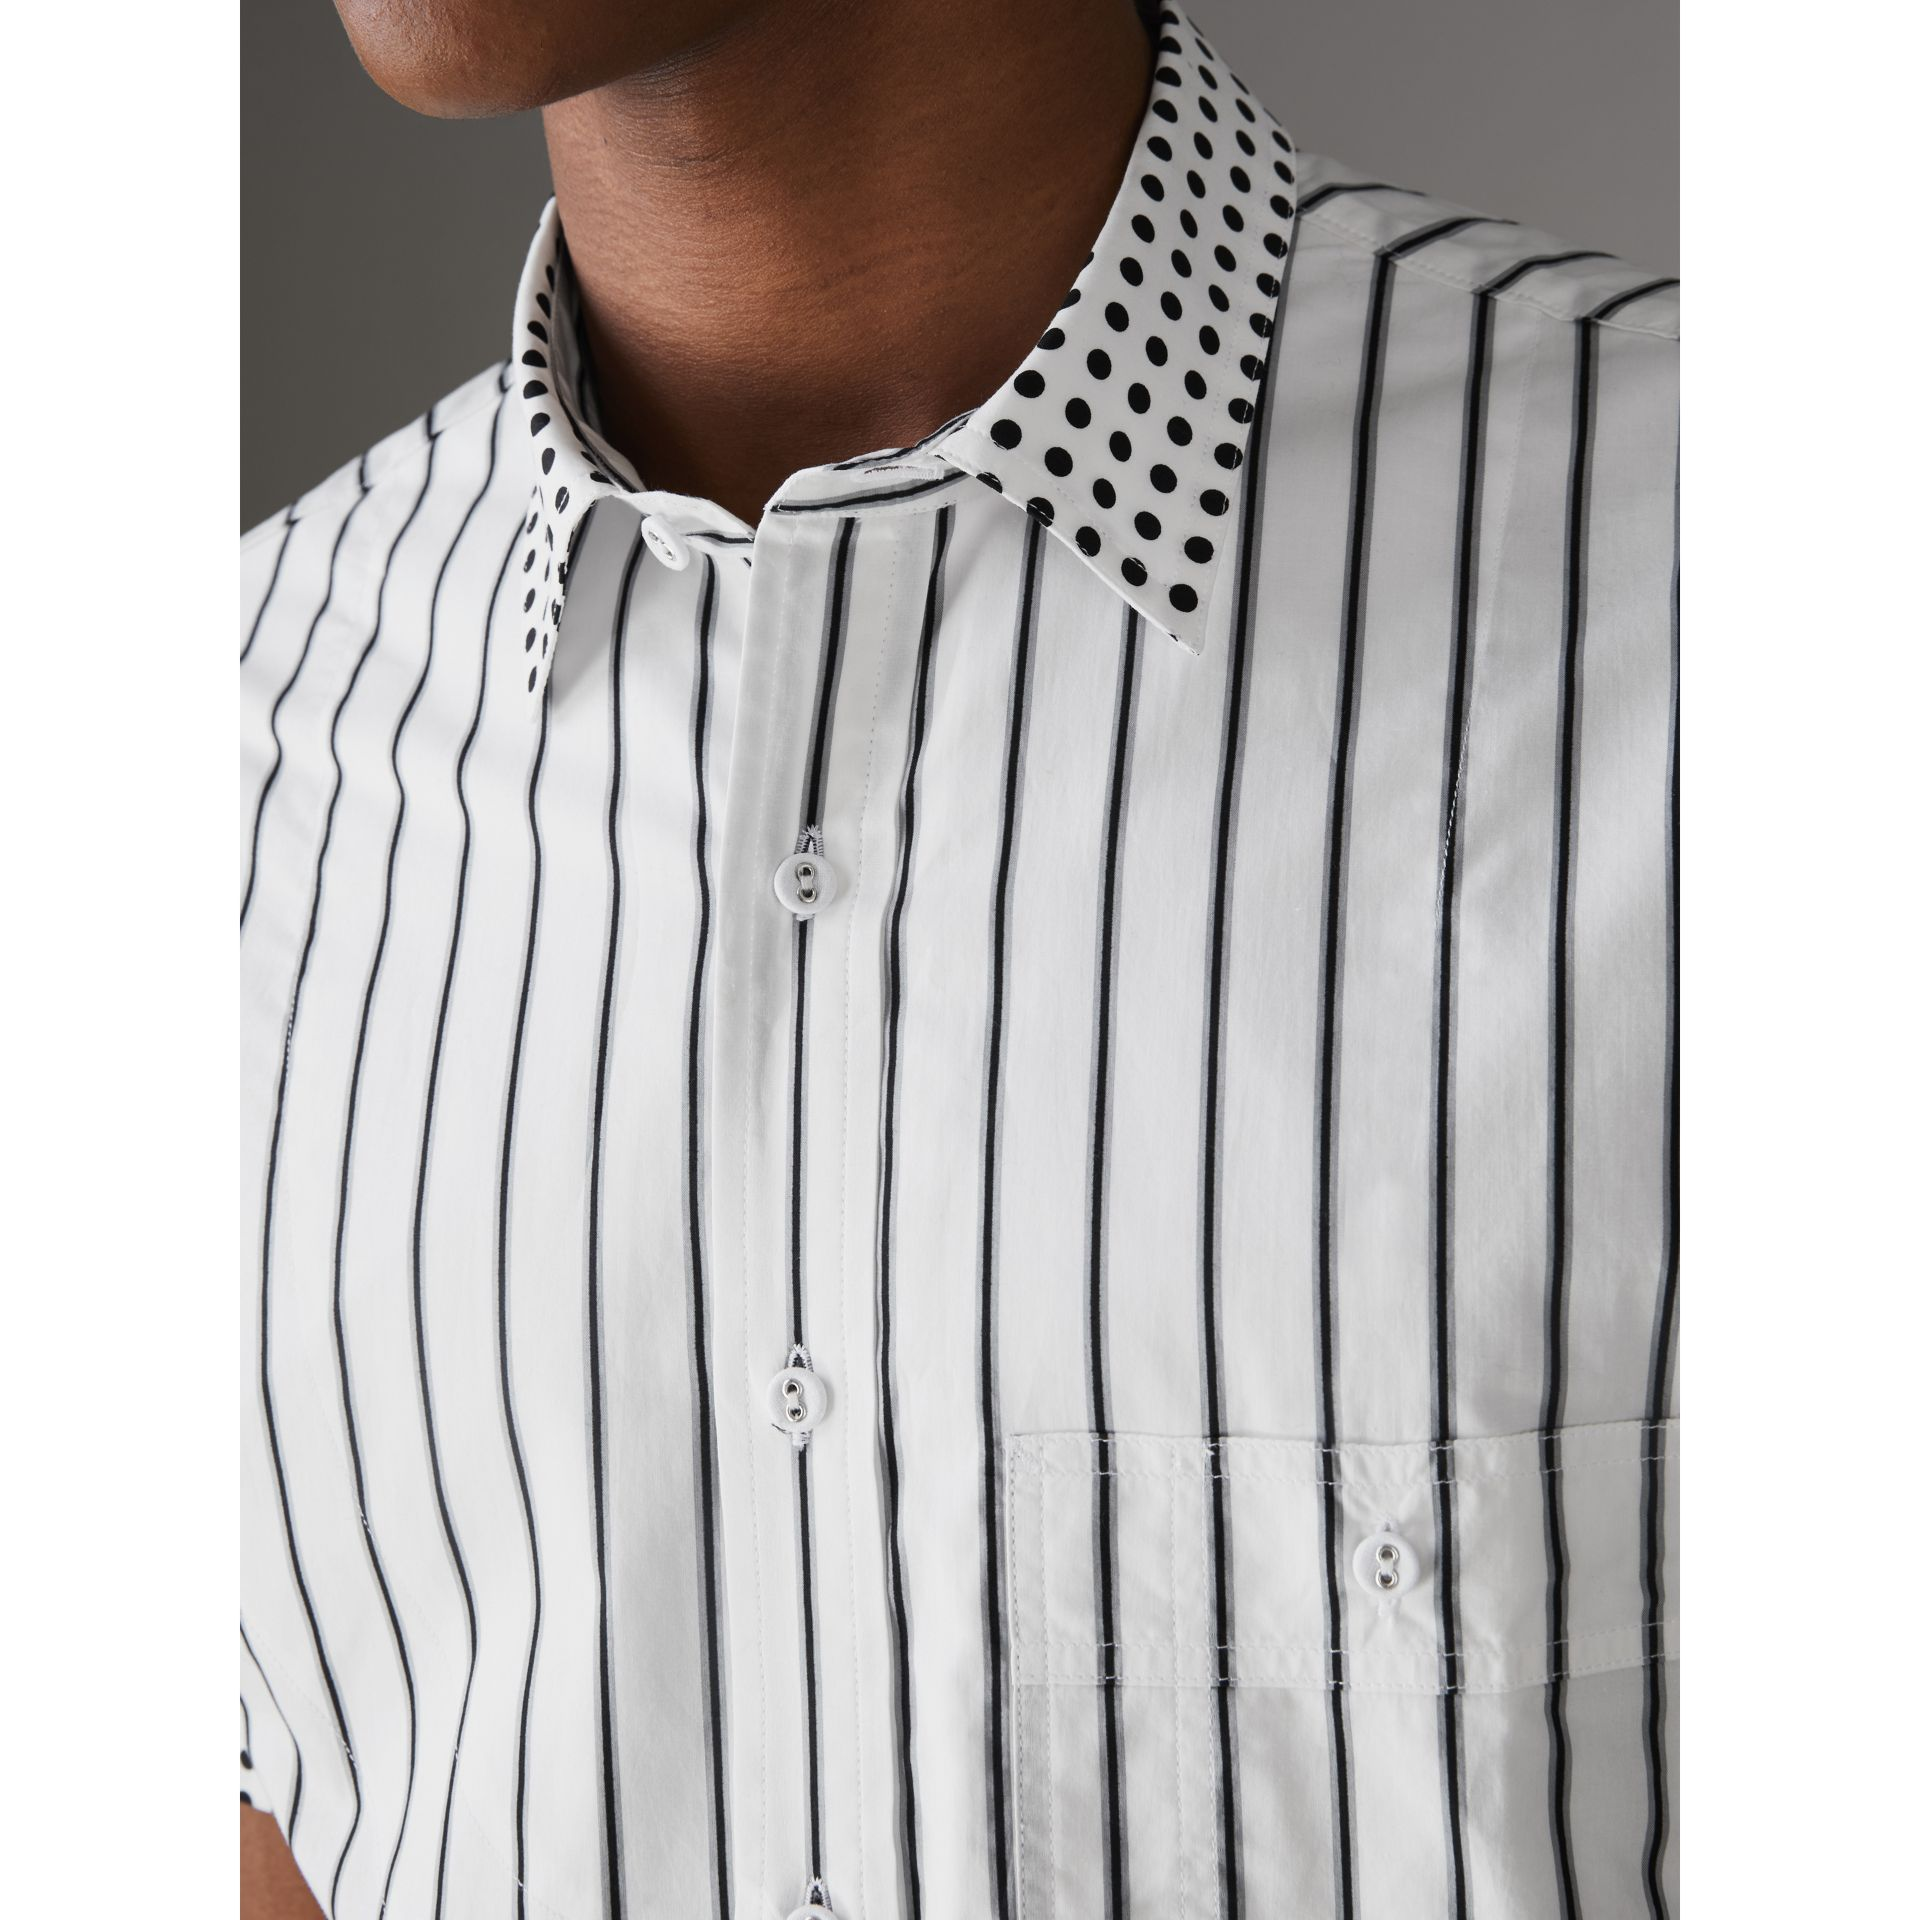 Short-sleeve Stripe and Spot Print Cotton Shirt in Black - Men | Burberry United Kingdom - gallery image 1